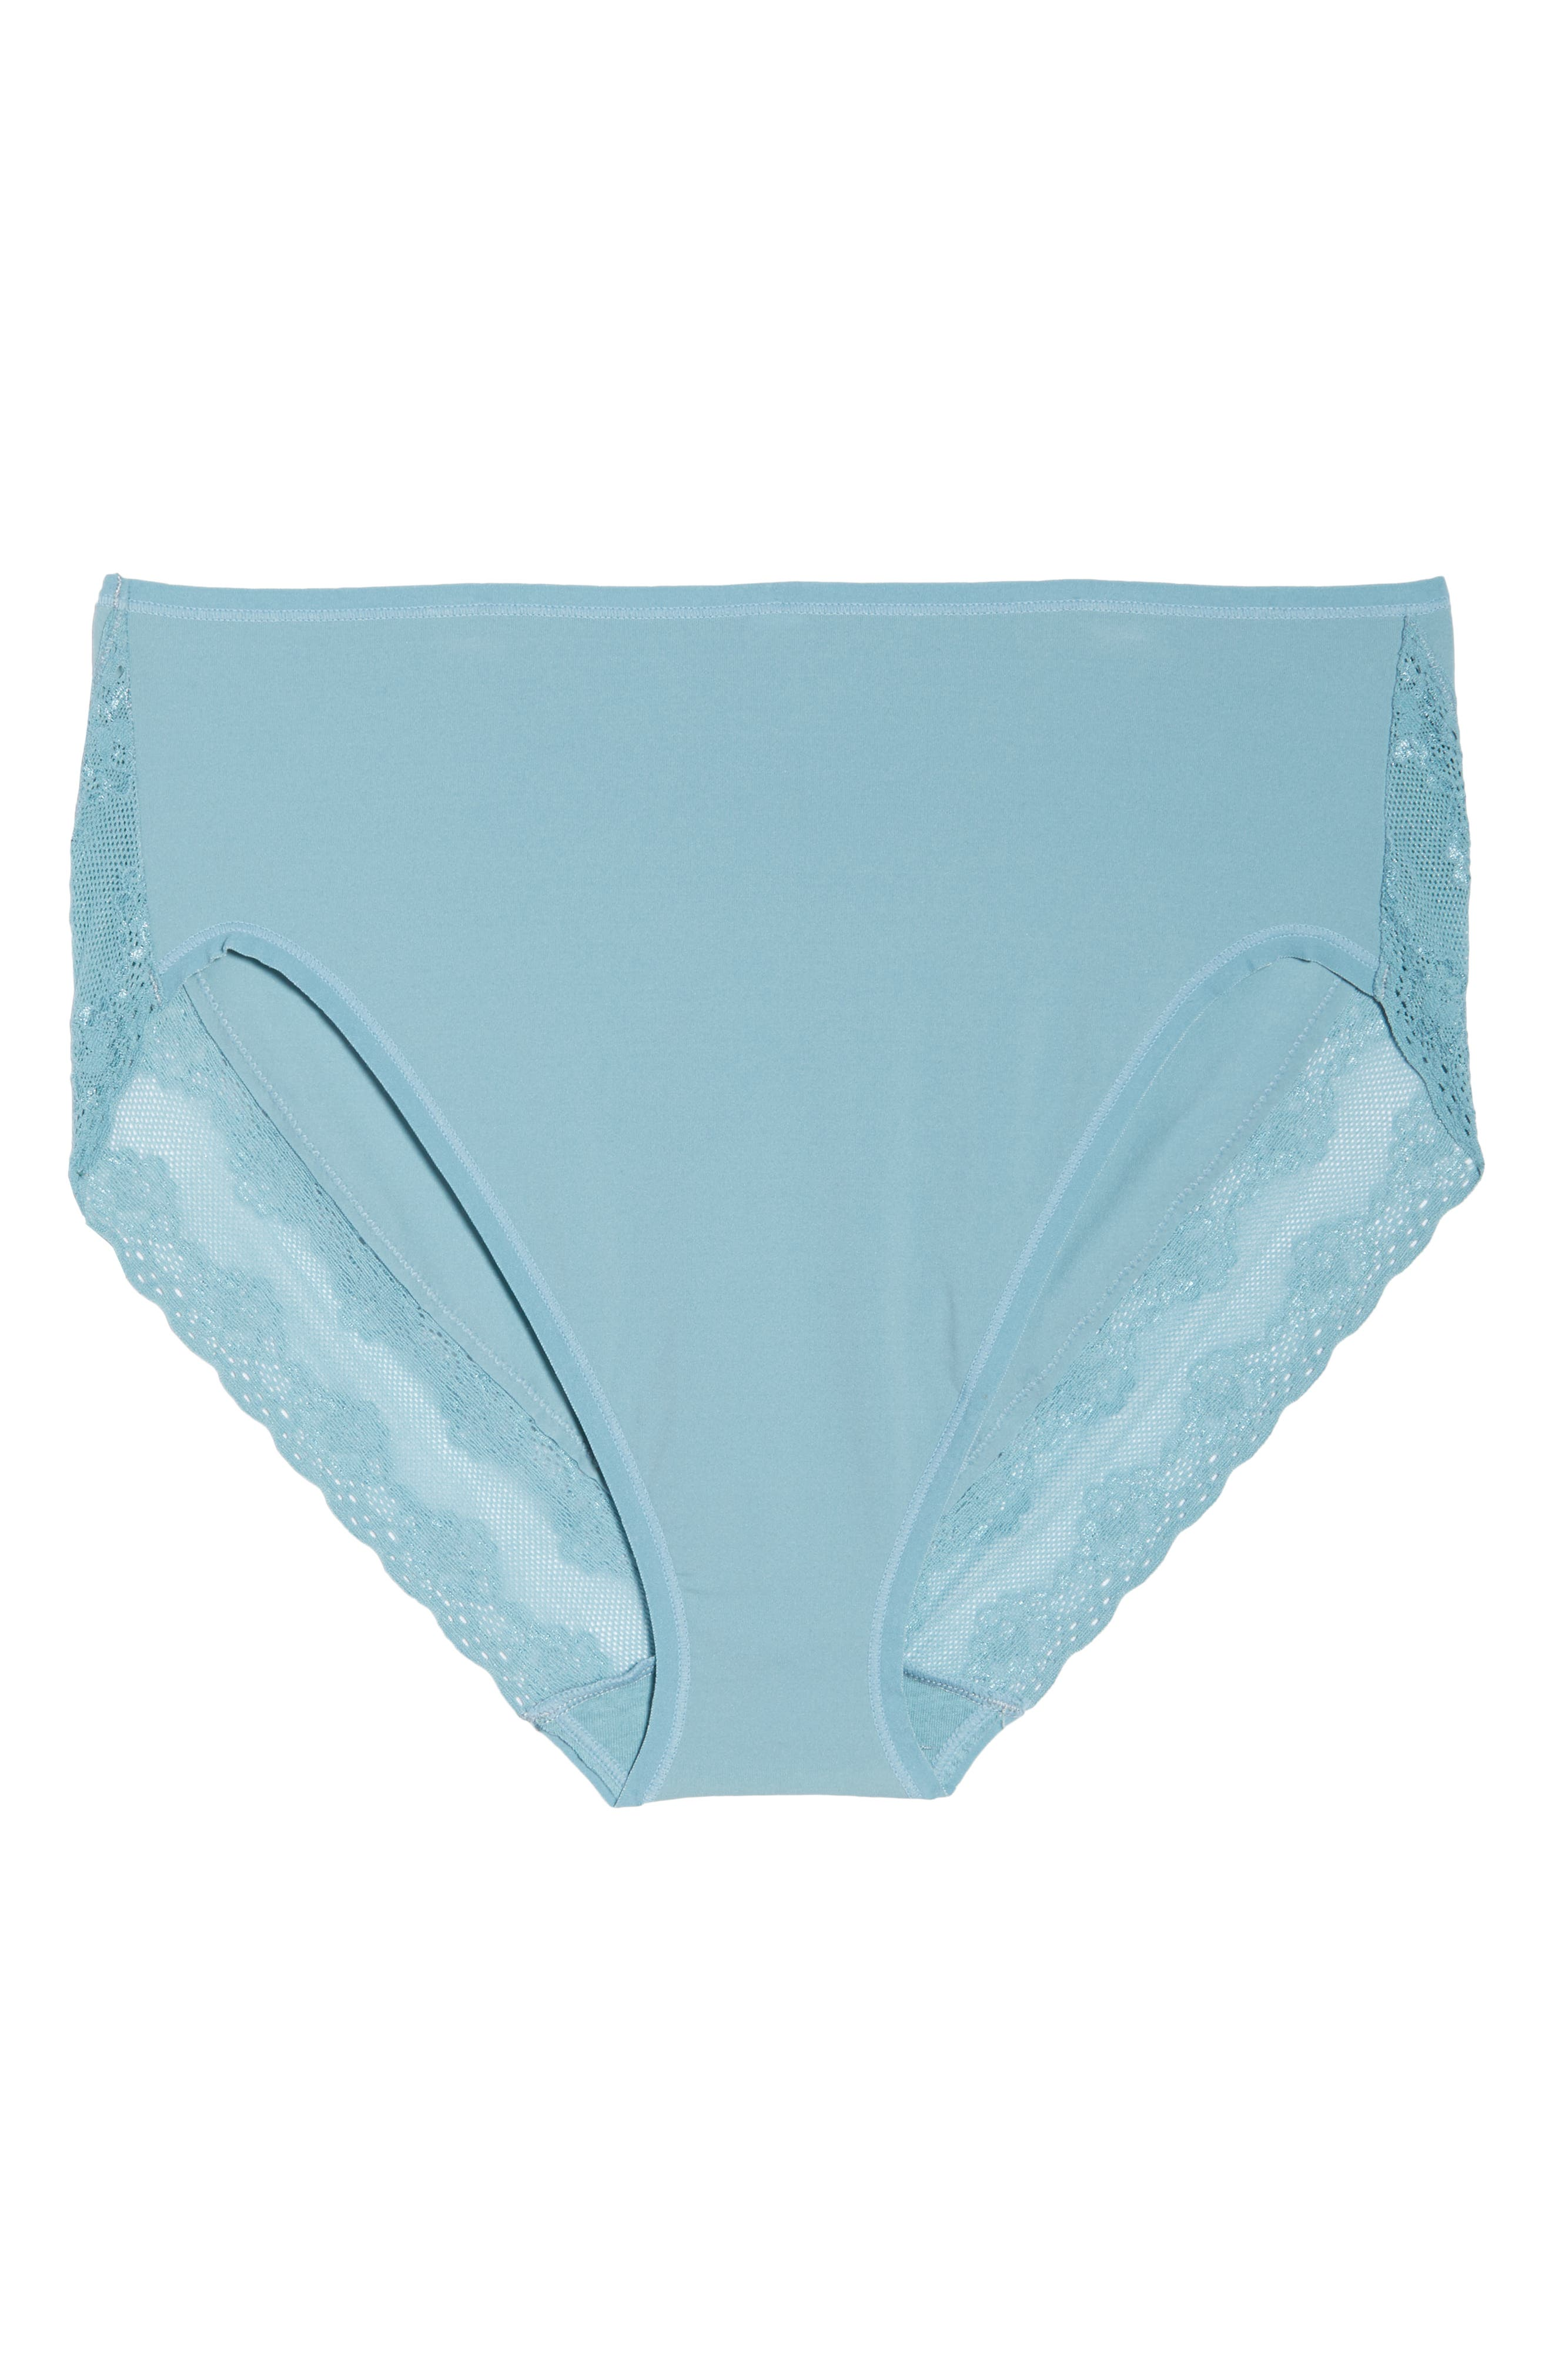 Bliss Perfection French Cut Briefs,                             Alternate thumbnail 6, color,                             SMOKE BLUE